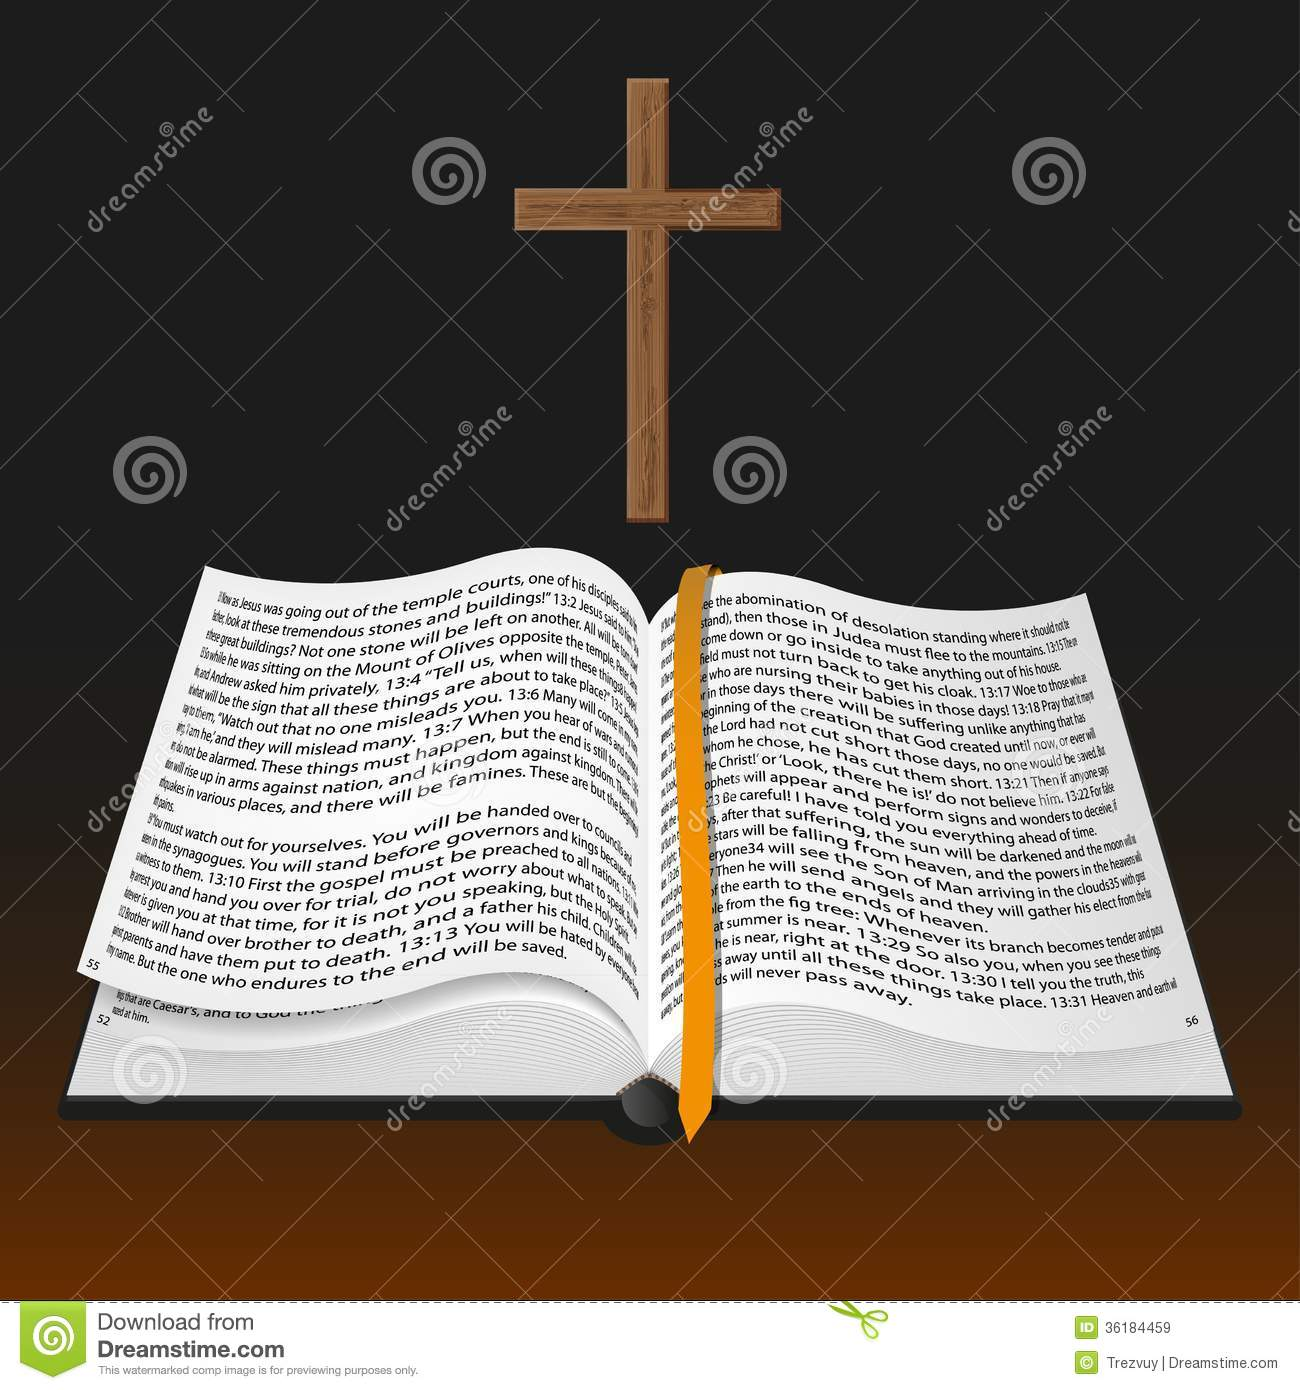 Vintage Leather Look Jeremiah Verse Bible Book Cover Large: Vector Bible With Cross Royalty Free Stock Images